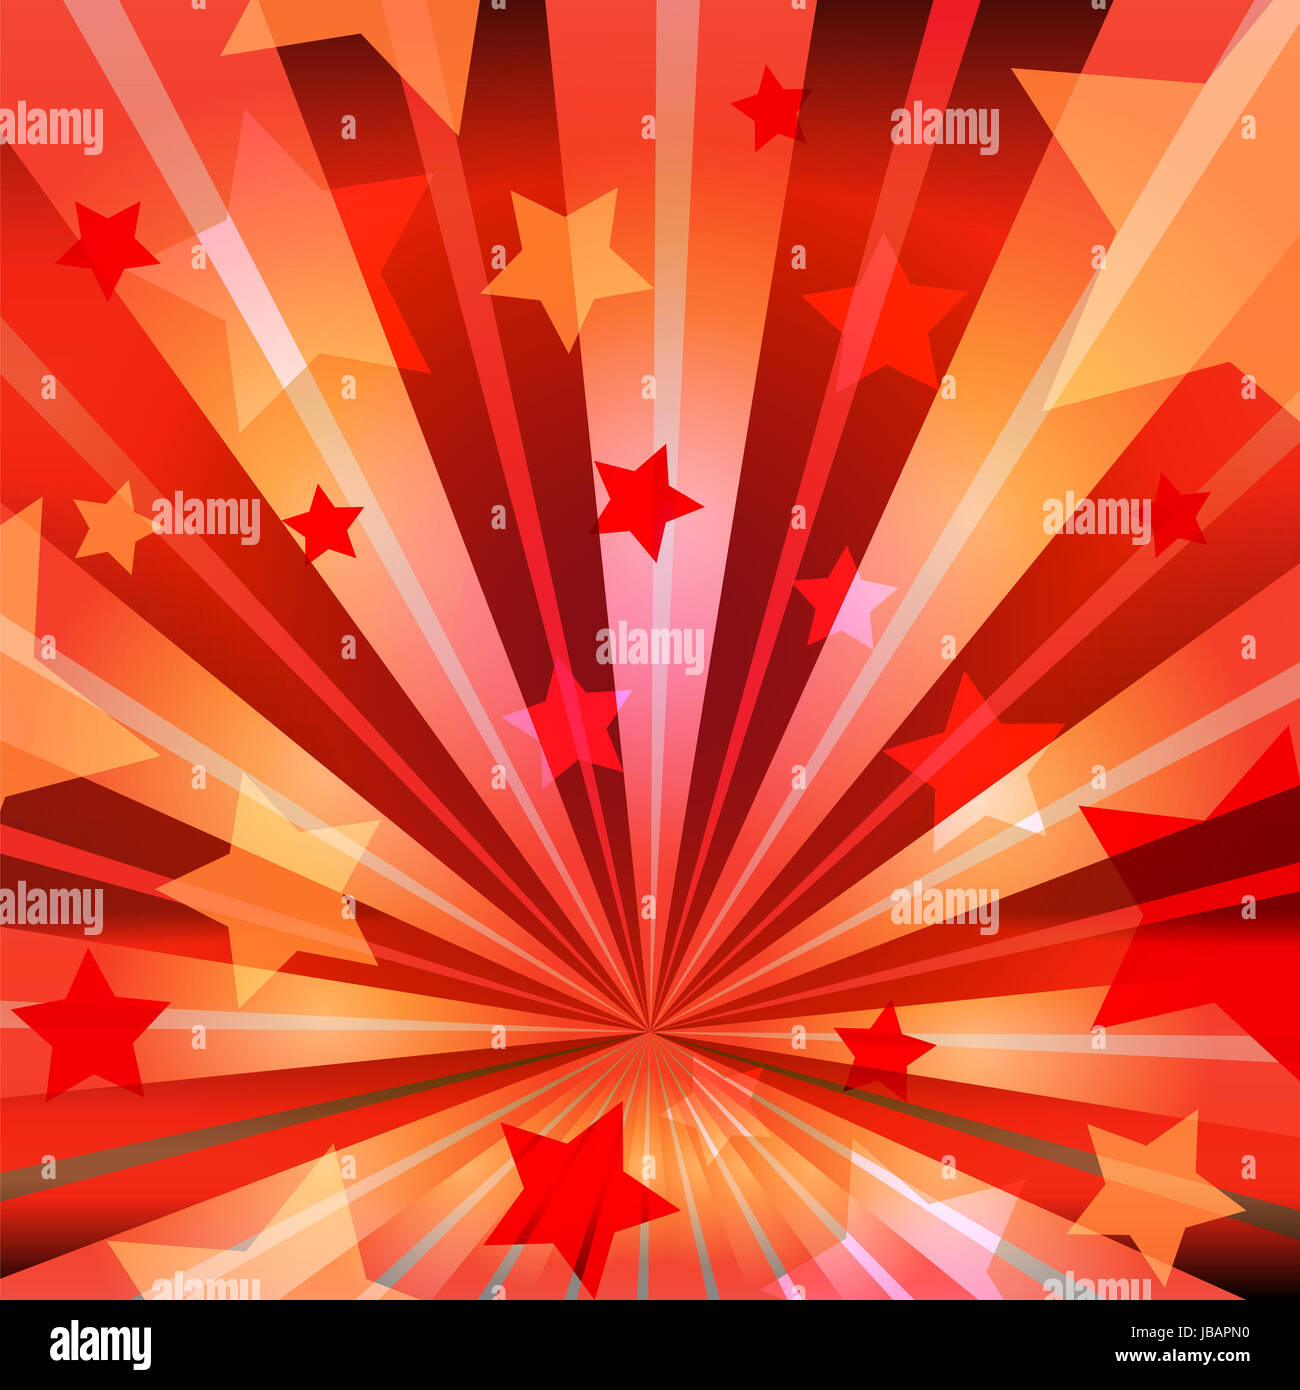 stars on a red background with radiating rays Stock Photo